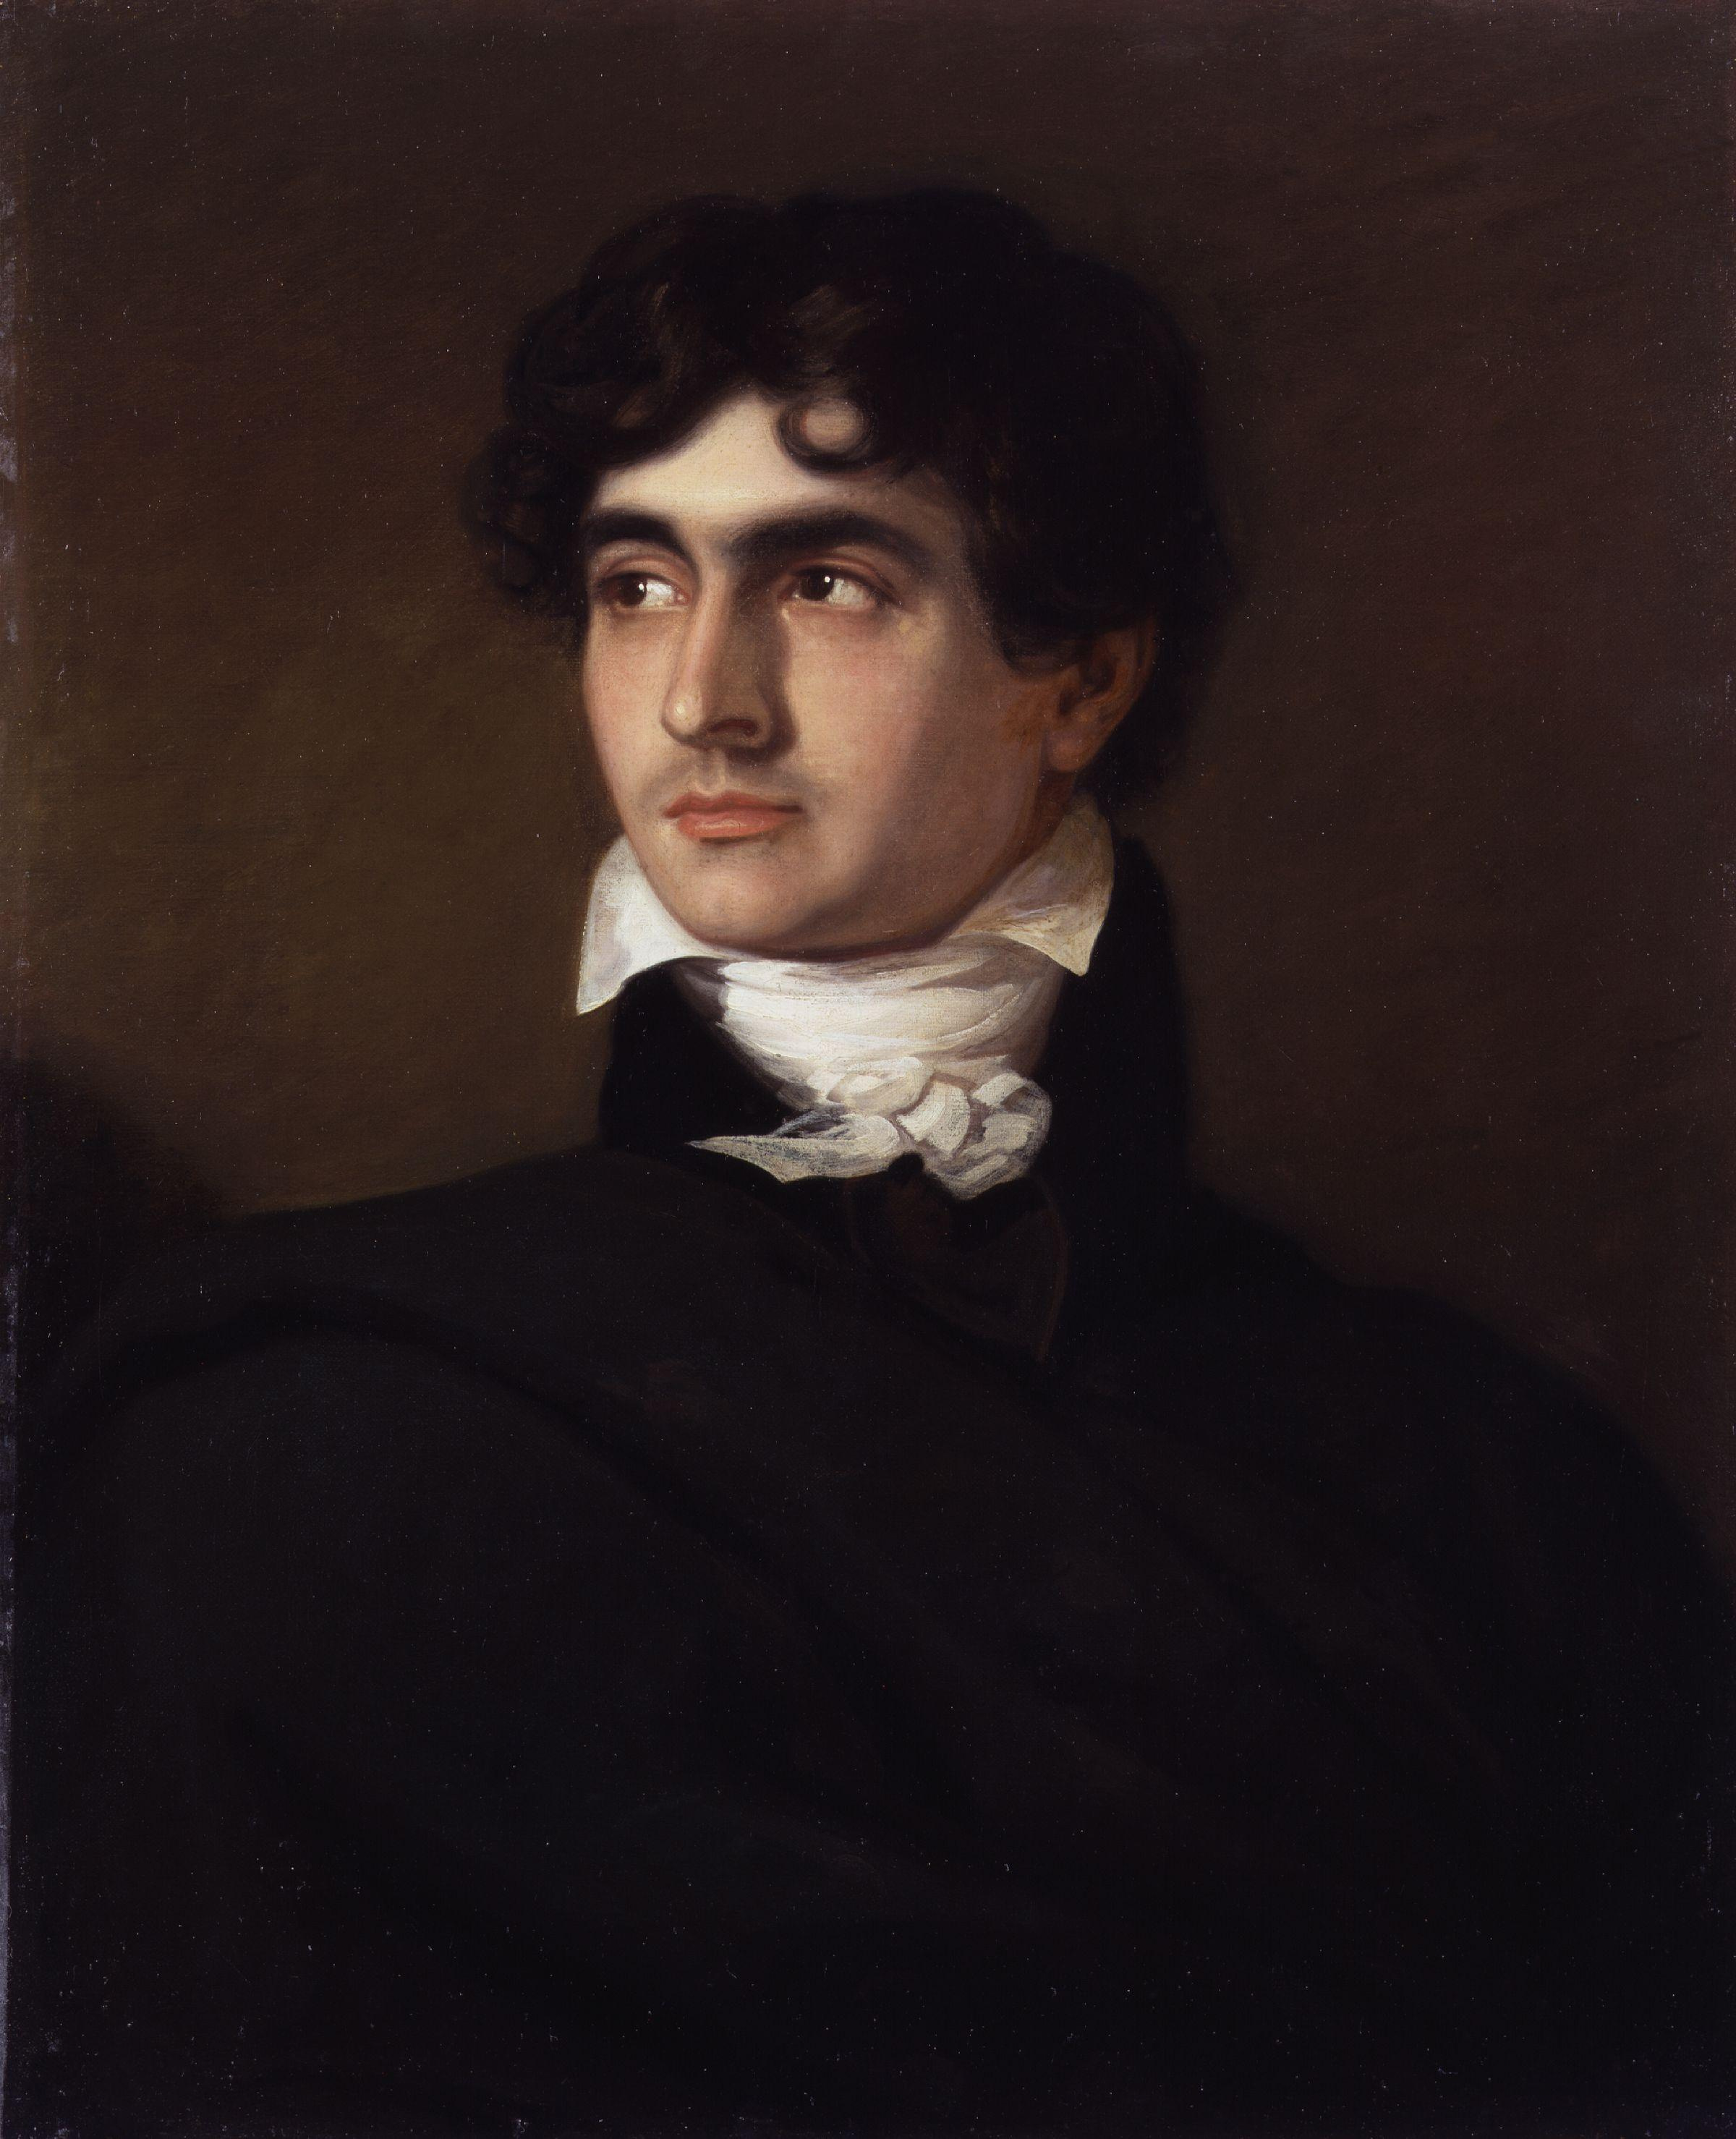 John Polidori by F.G. Gainsford